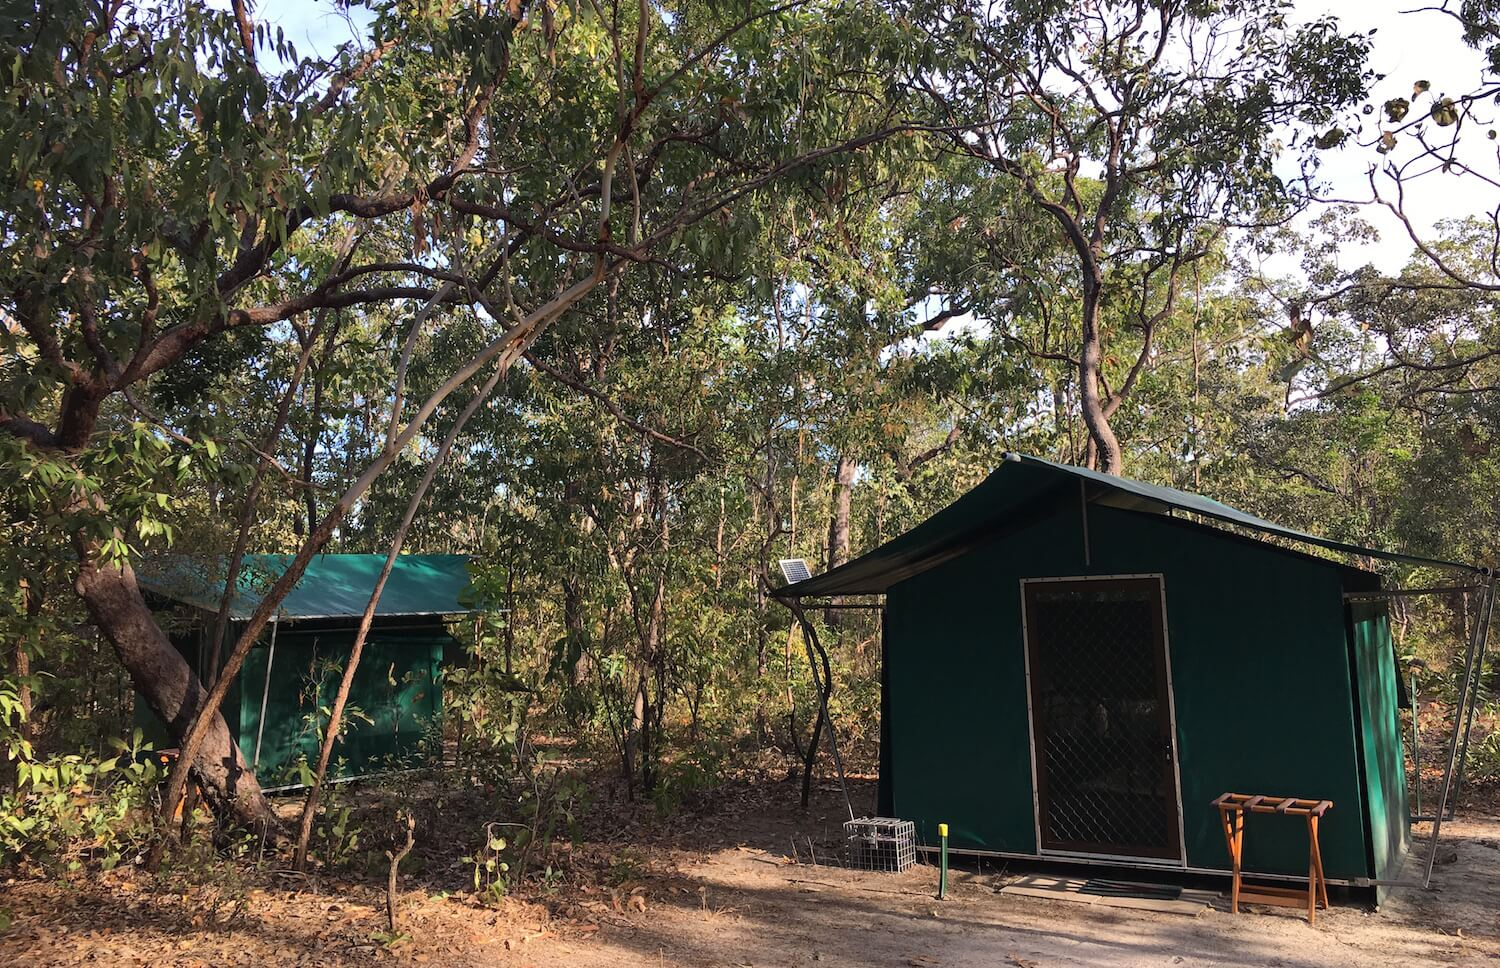 The huts at Sab's campsite with mesh walls.